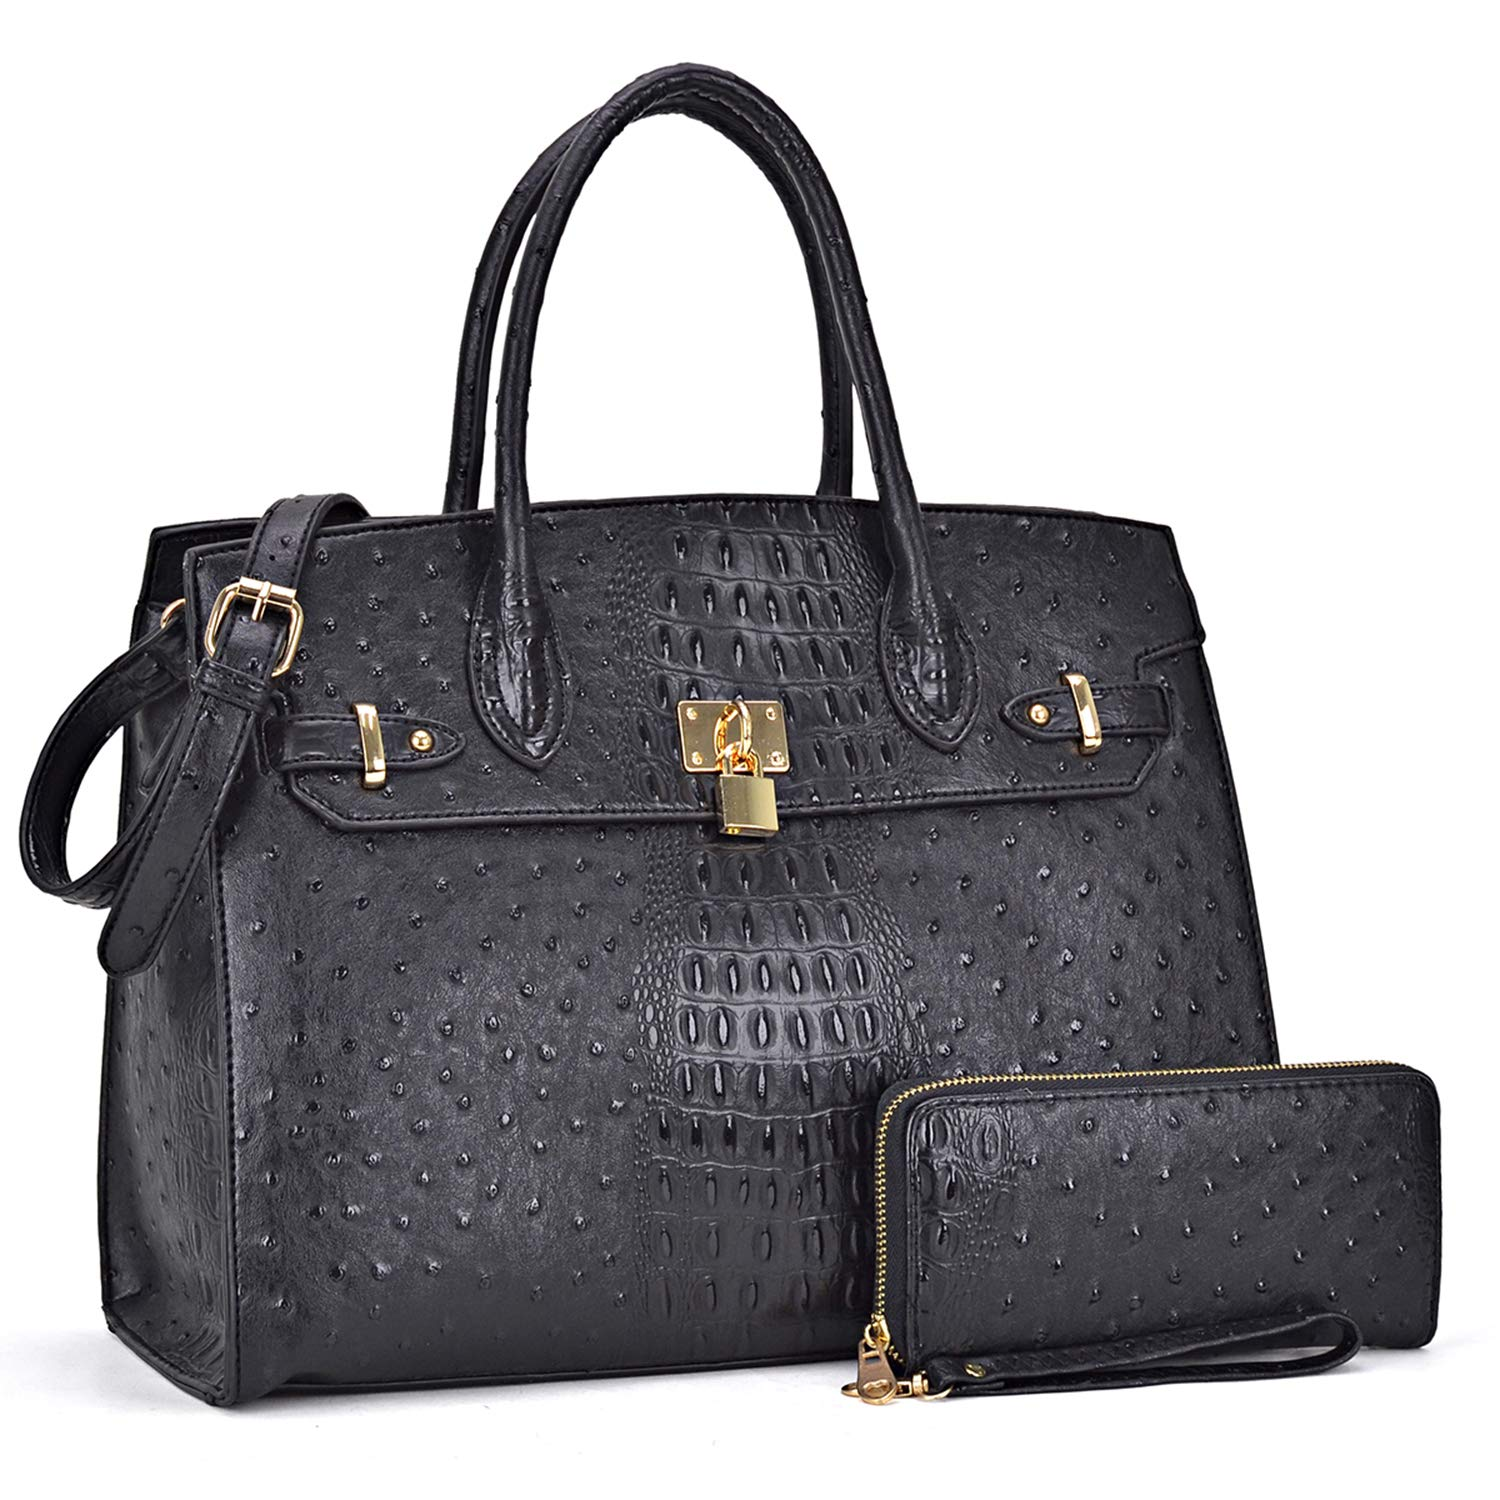 40abf3ee918f Amazon.com  DASEIN Women s Purses and Handbags Shoulder Bags Ladies Tote  Bags Padlock Satchels with Wallet  Shoes